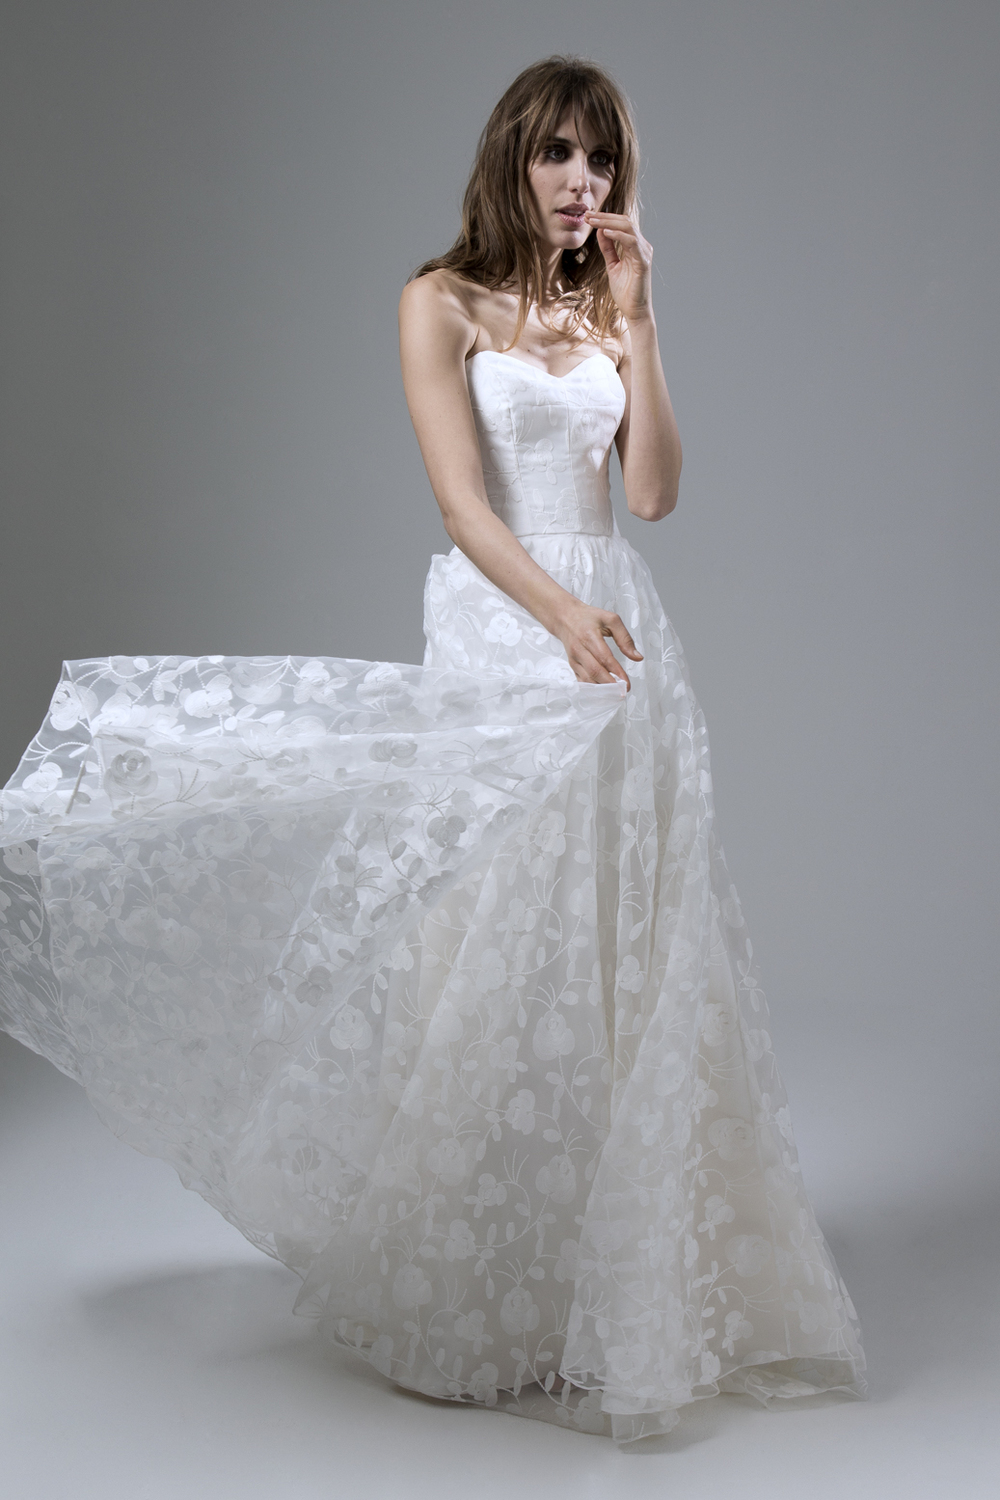 Esme Embroidered Organza Strapless Wedding Dress with Circular Skirt Designed by Halfpenny London